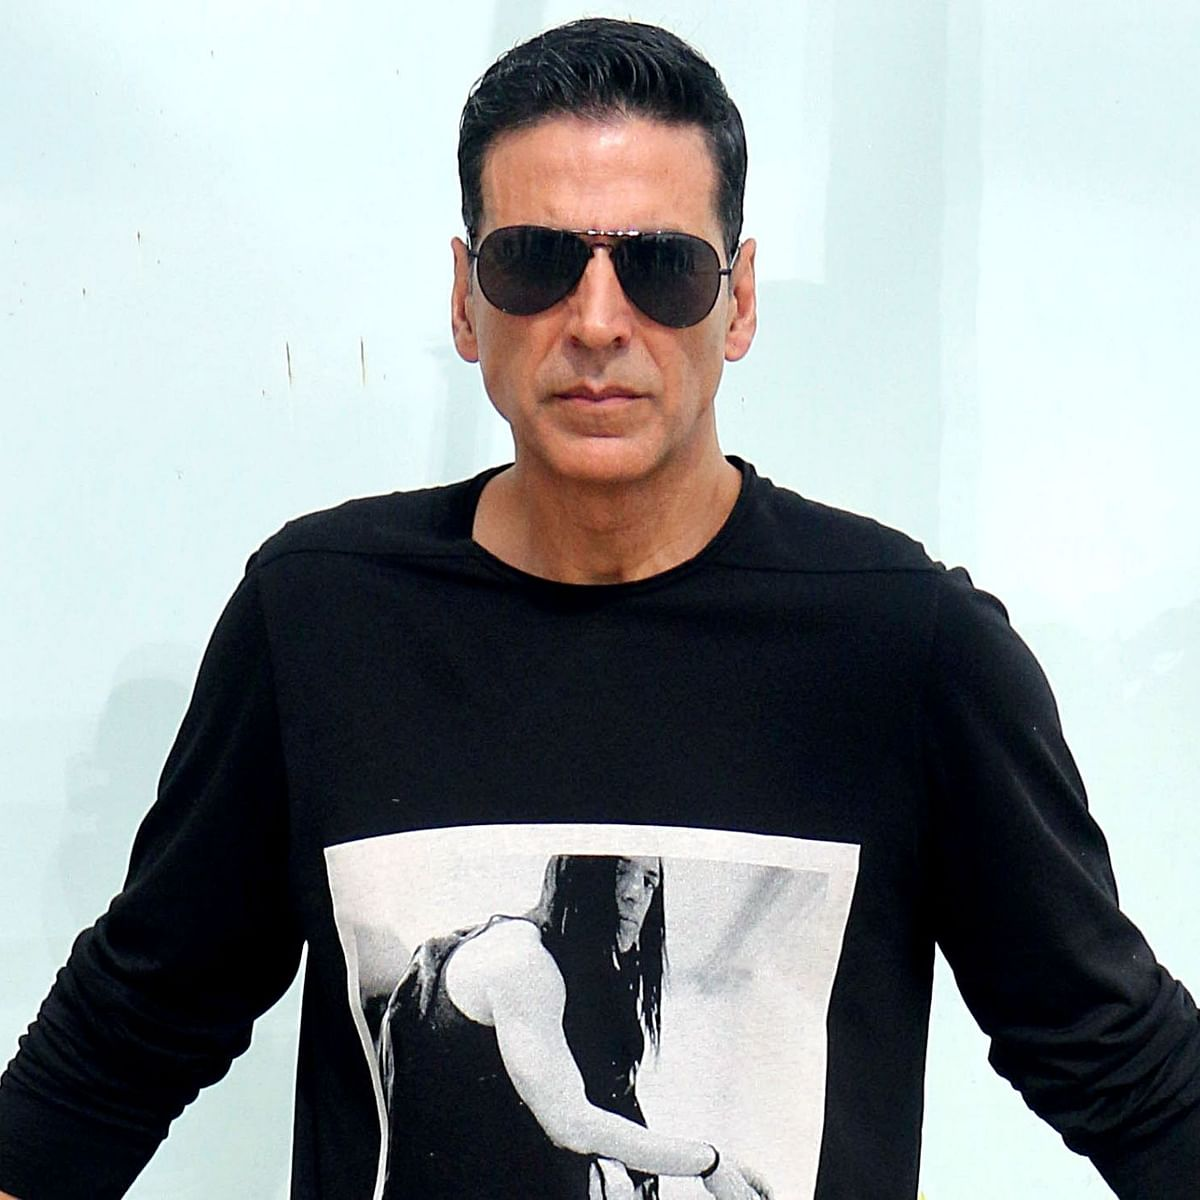 Akshay Kumar Defamation Case: YouTuber refuses to pay Rs 500 cr; threatens actor with legal action